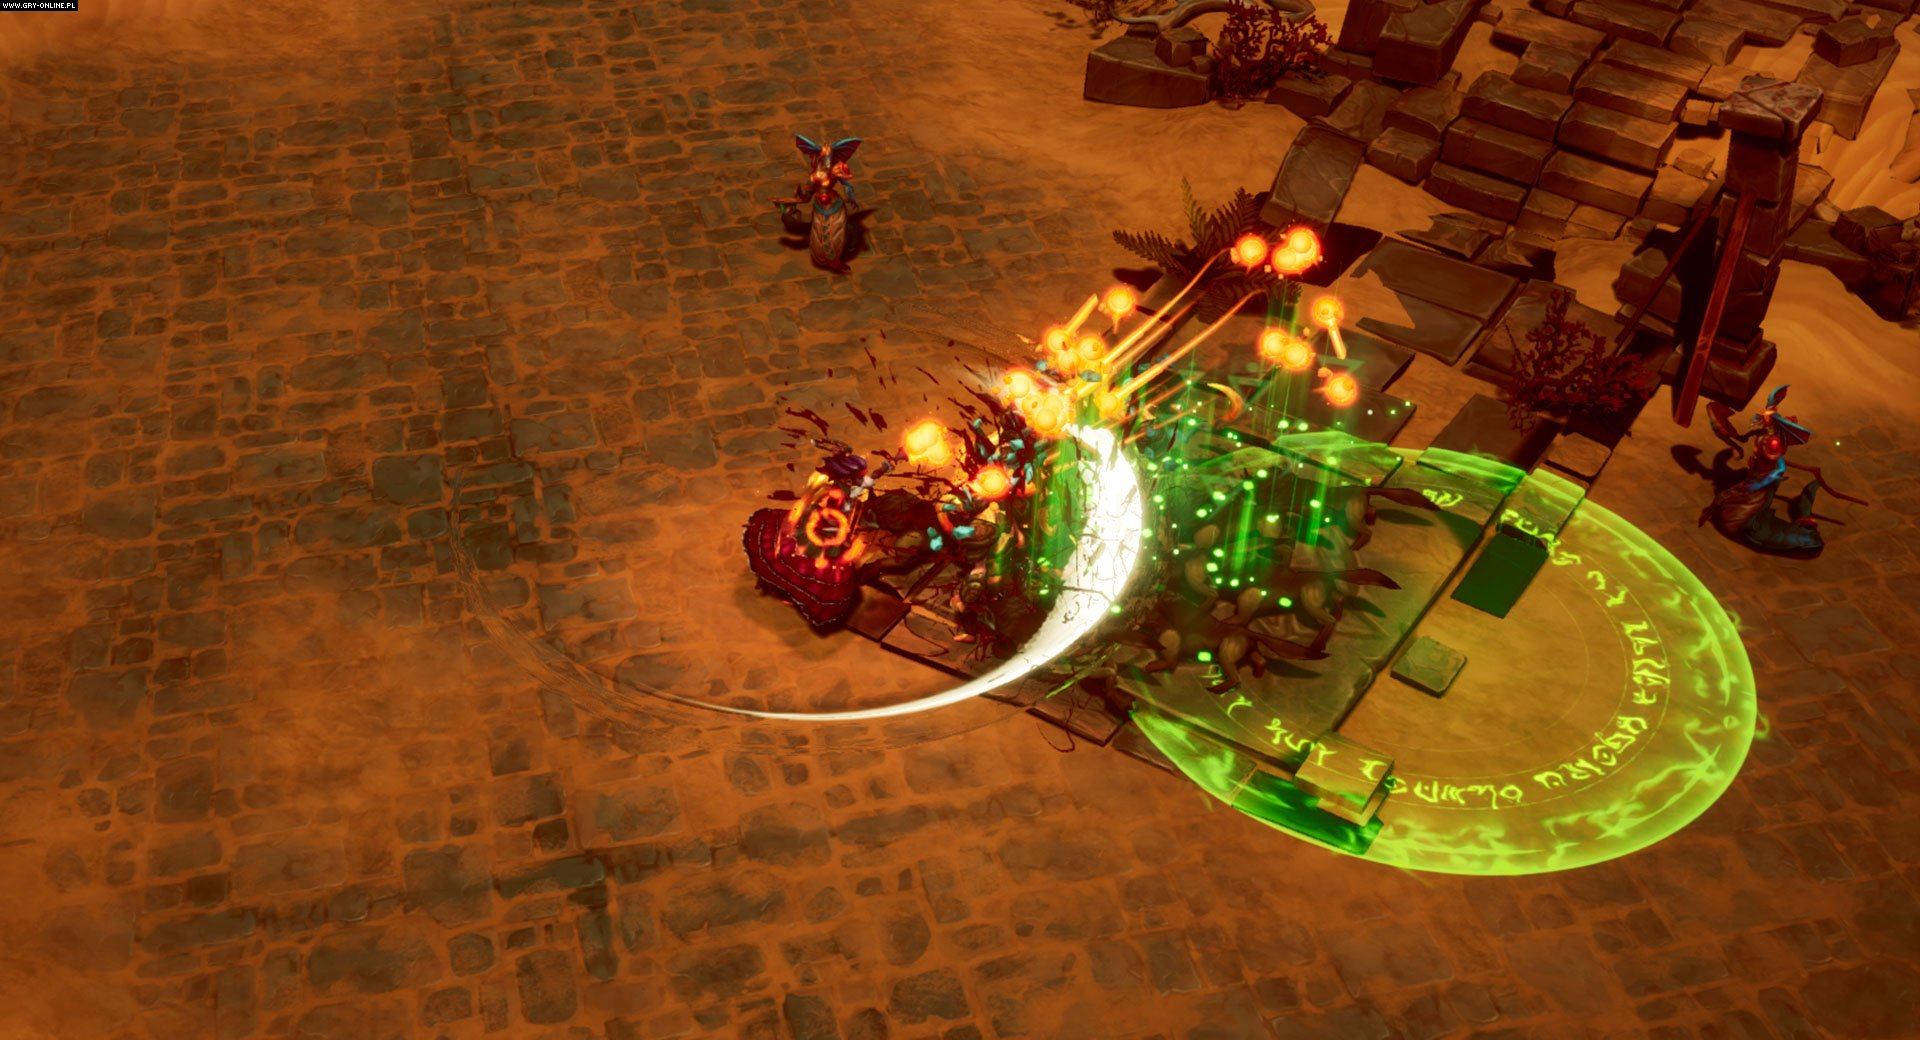 Pagan Online PC Games Image 1/36, Mad Head Games, Wargaming